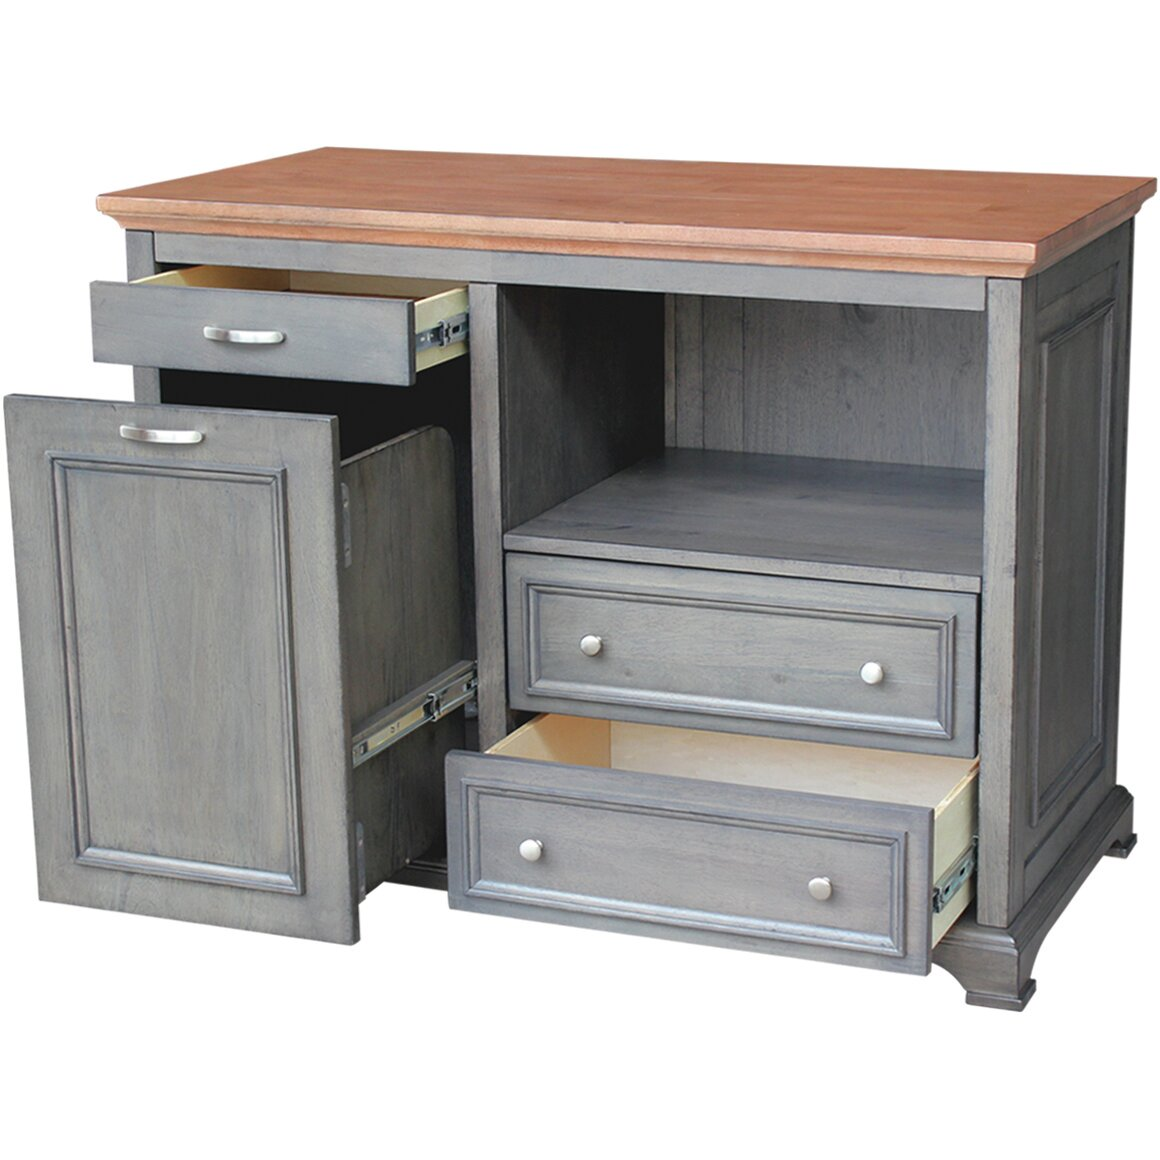 Just Cabinets Bristol Kitchen Island With Wood Top